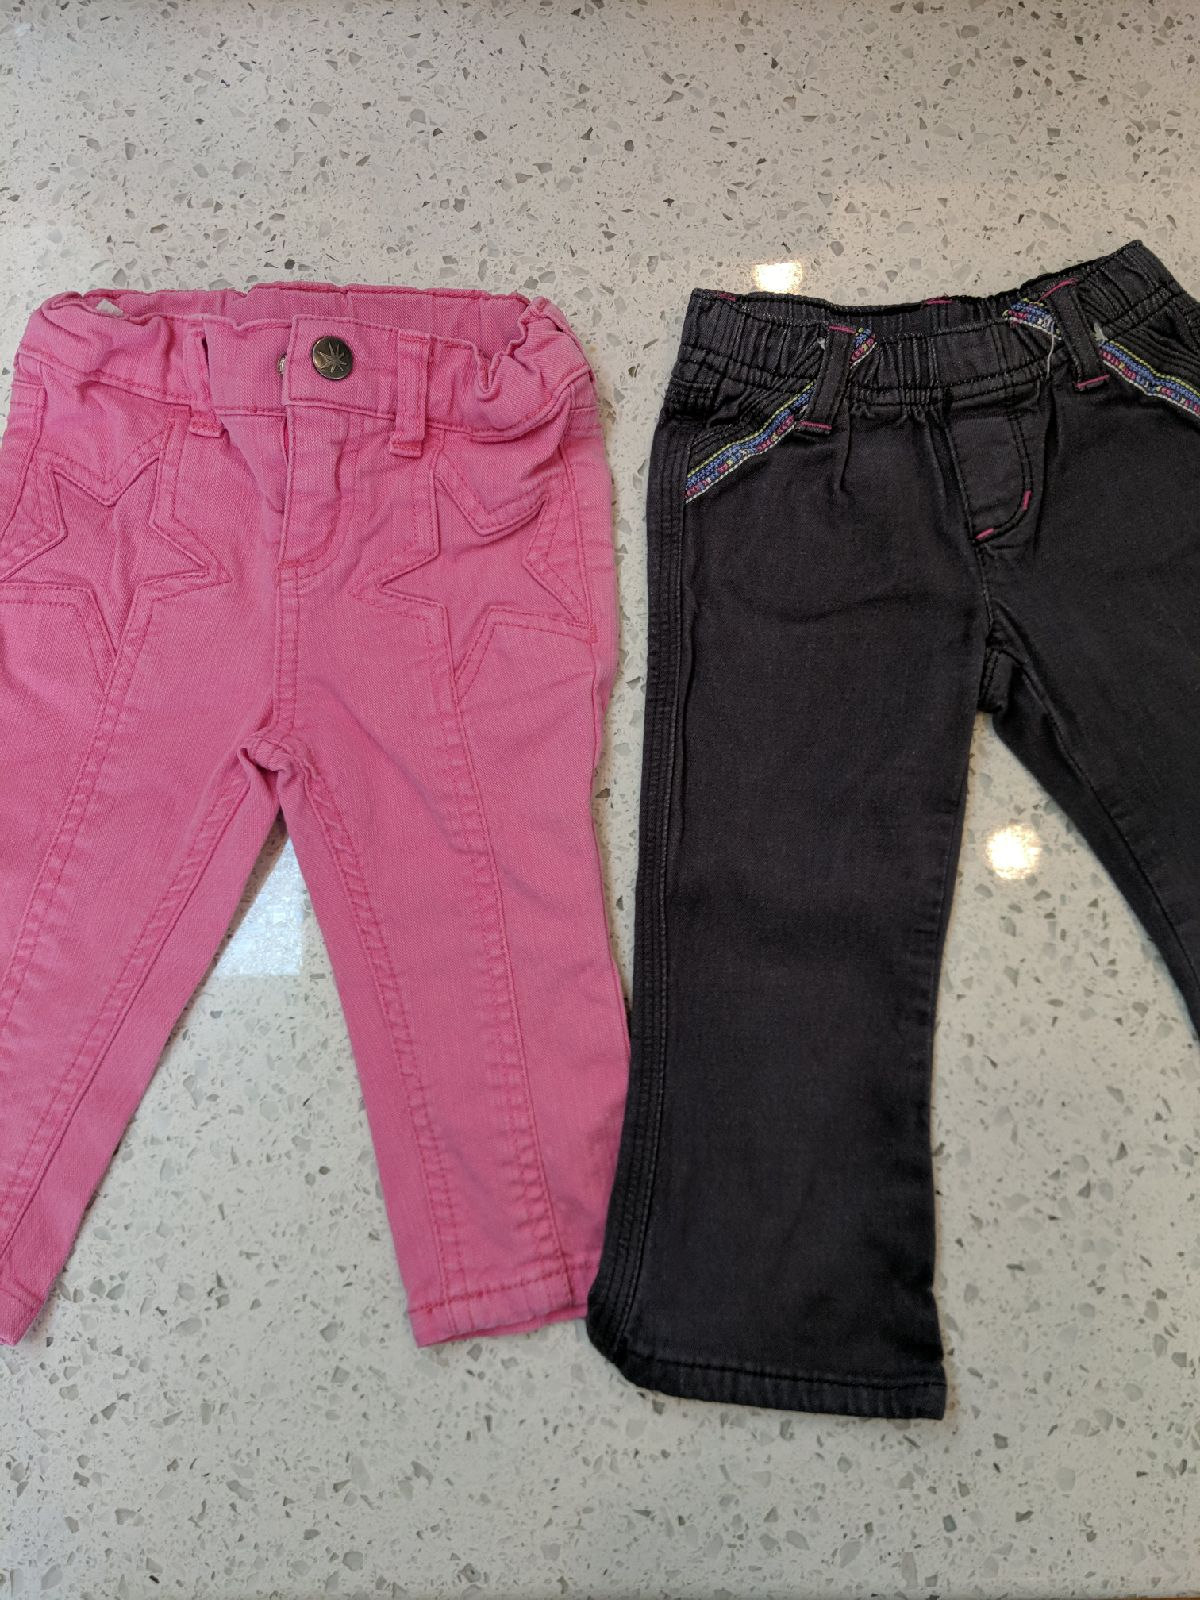 Toddler girls Jeans size 2T